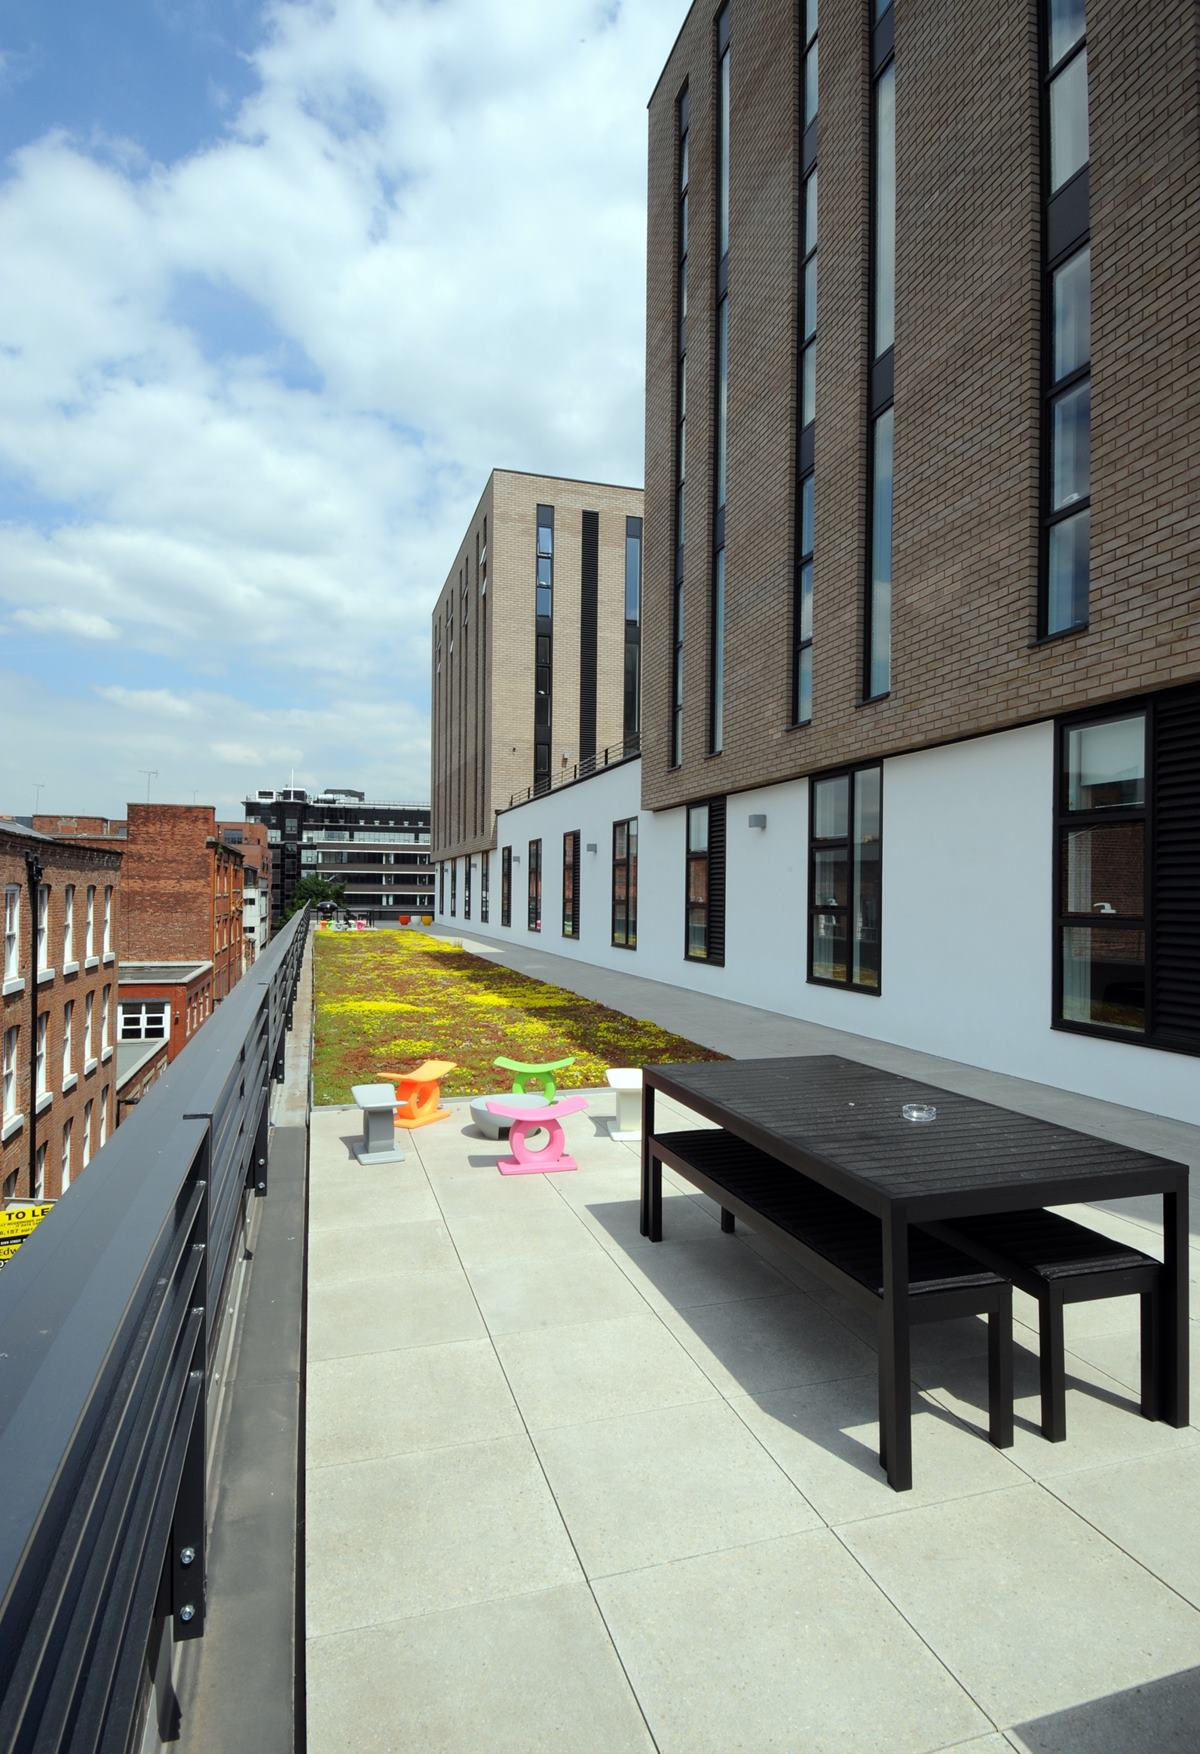 Roof terrace dining hire thestudio manchester for Terrace nq manchester